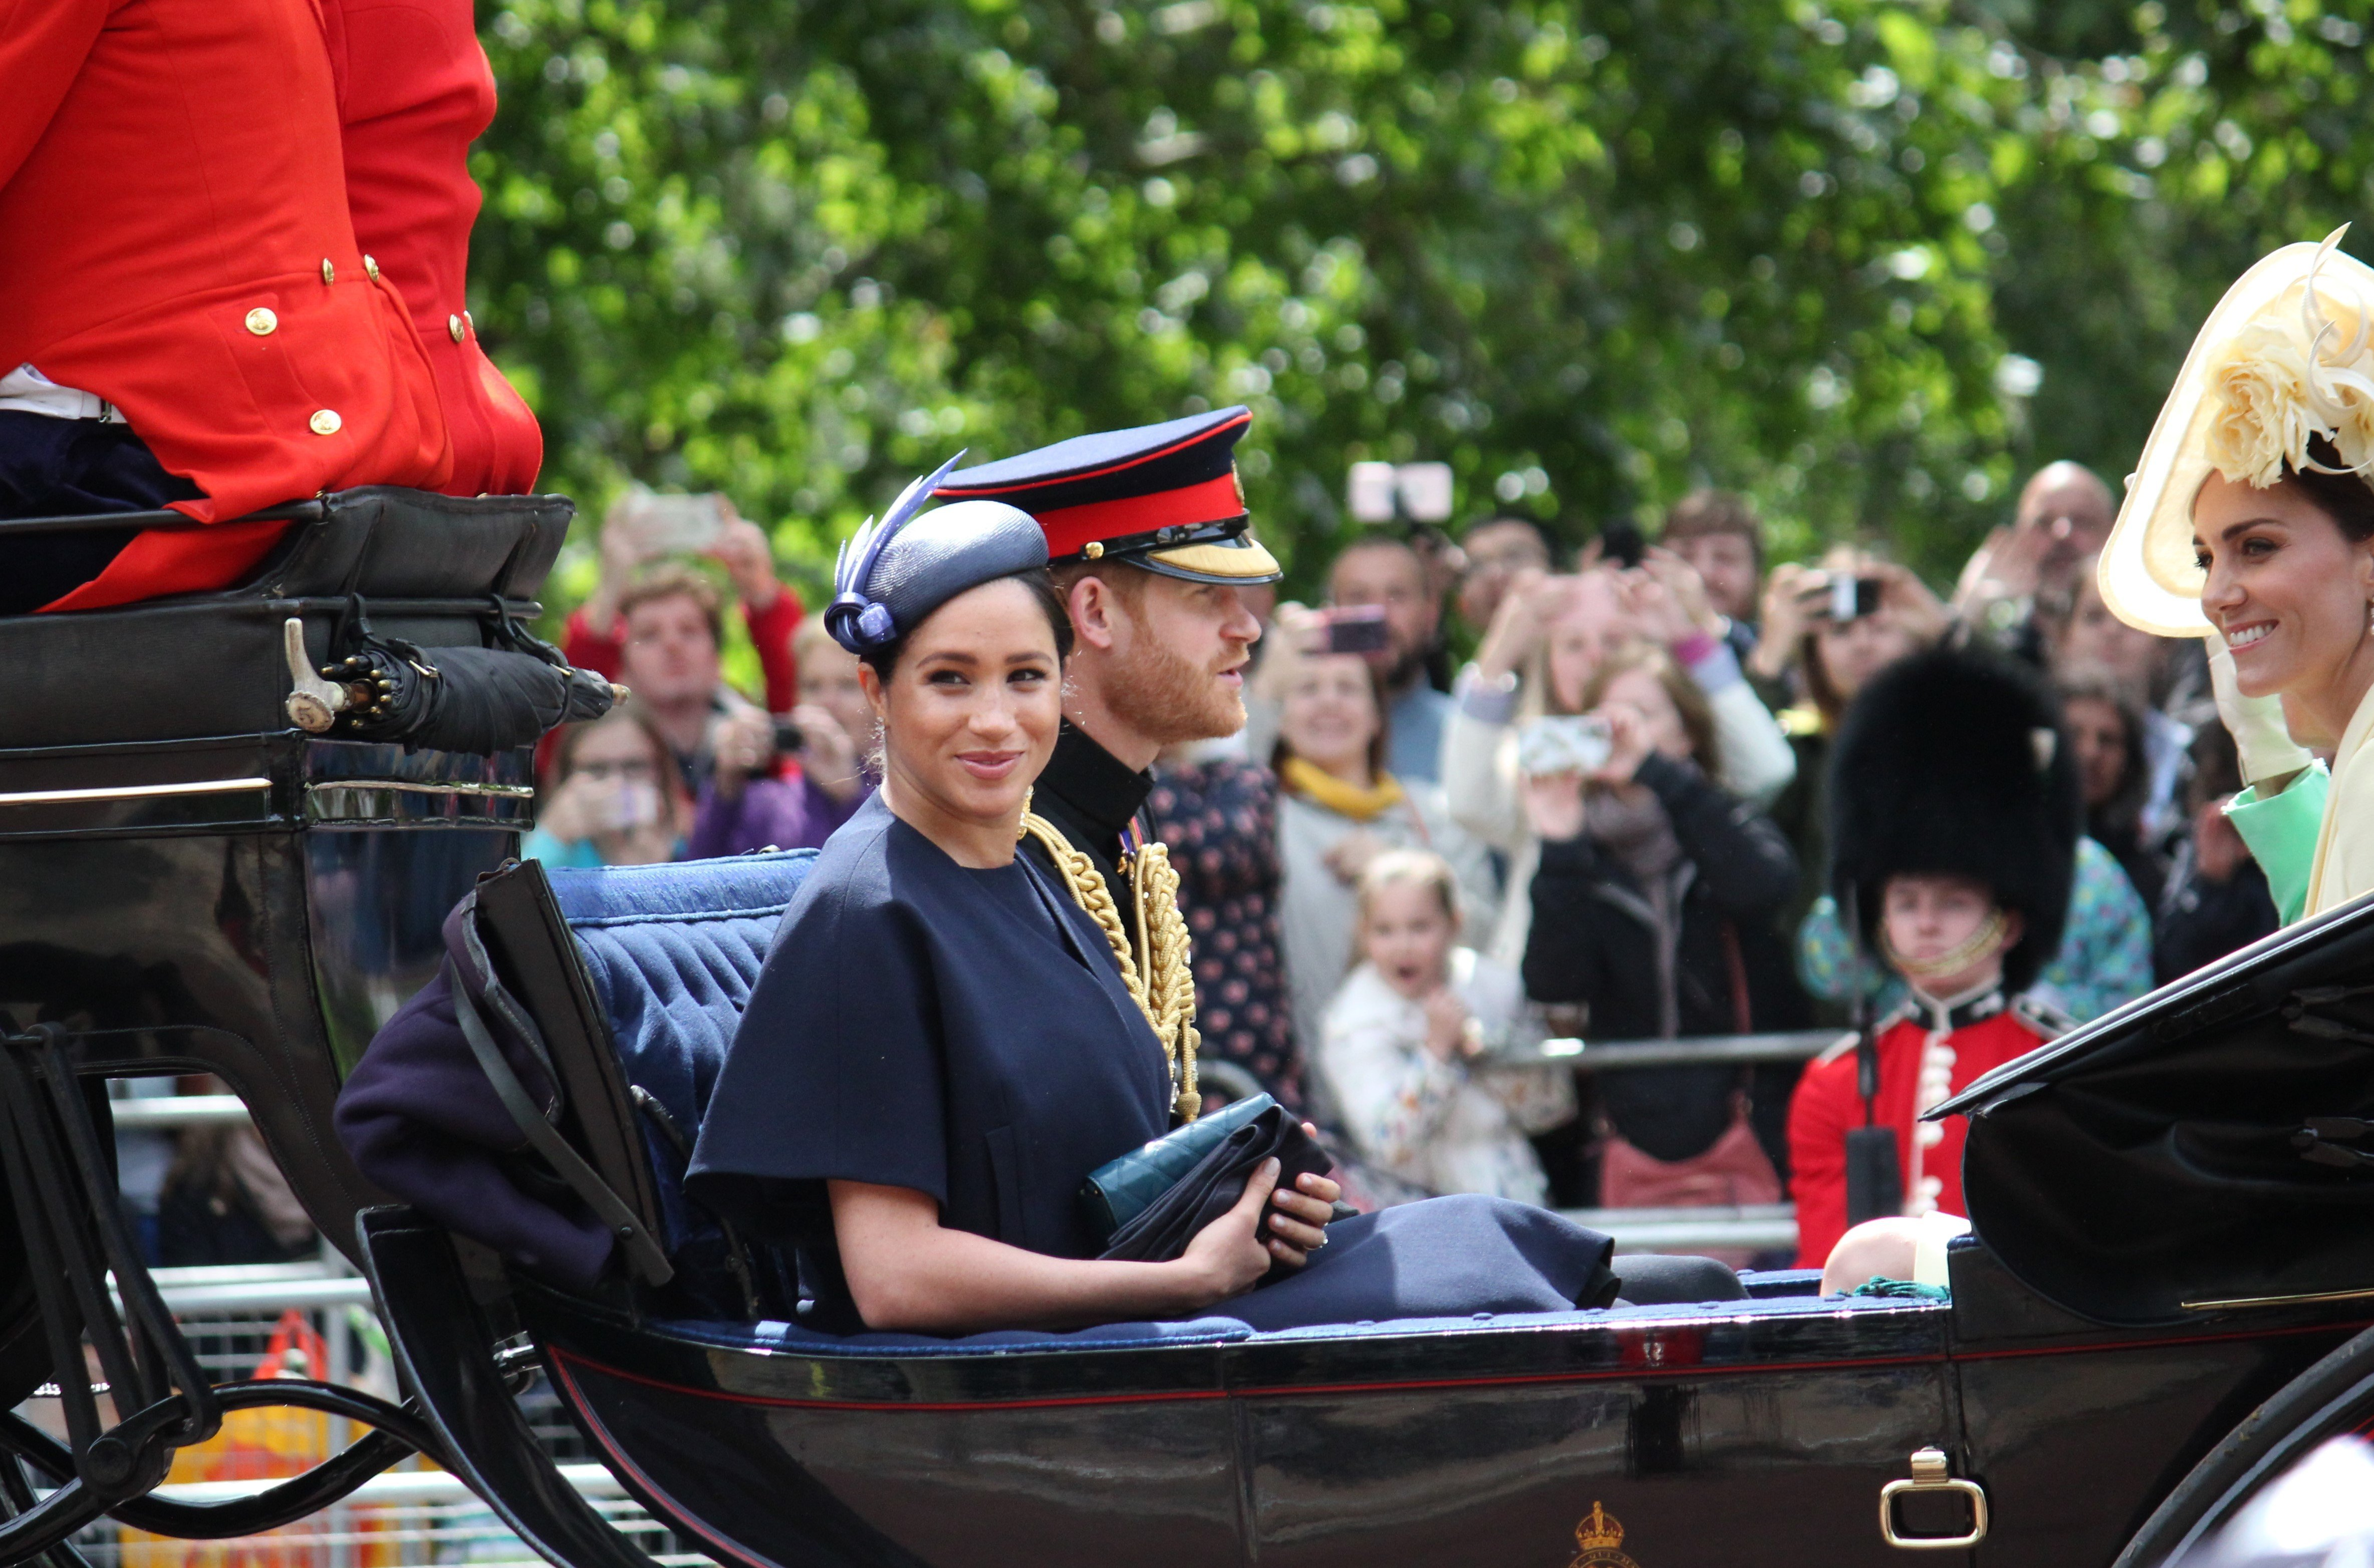 Meghan Markle, Prince Harry, and Kate Middleton arrive at Trooping the Color in June 2019 | Photo: Getty Images